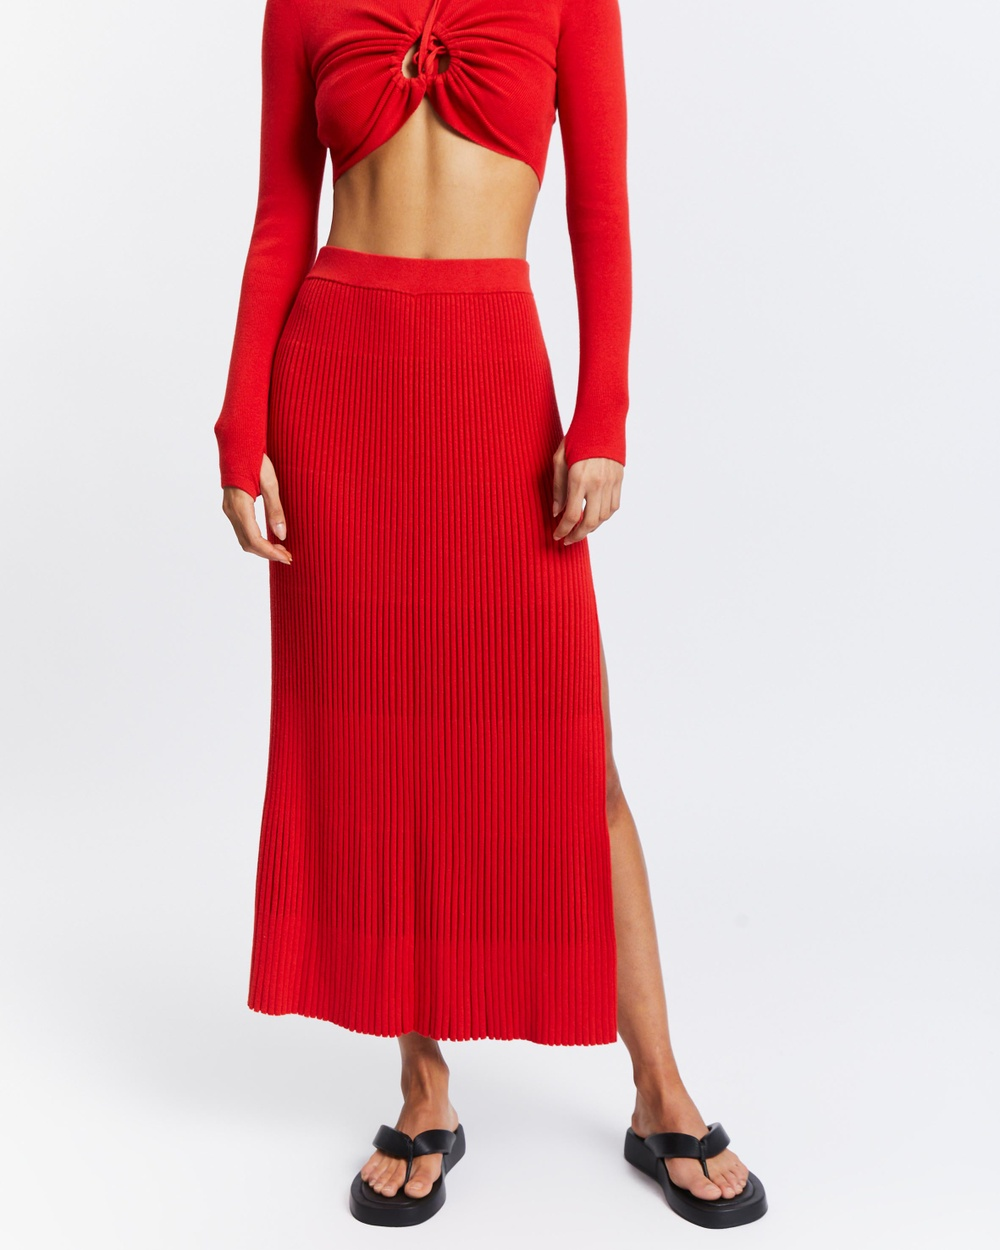 AERE Organic Cotton Pleat Knit Skirt Pleated skirts Fire Red